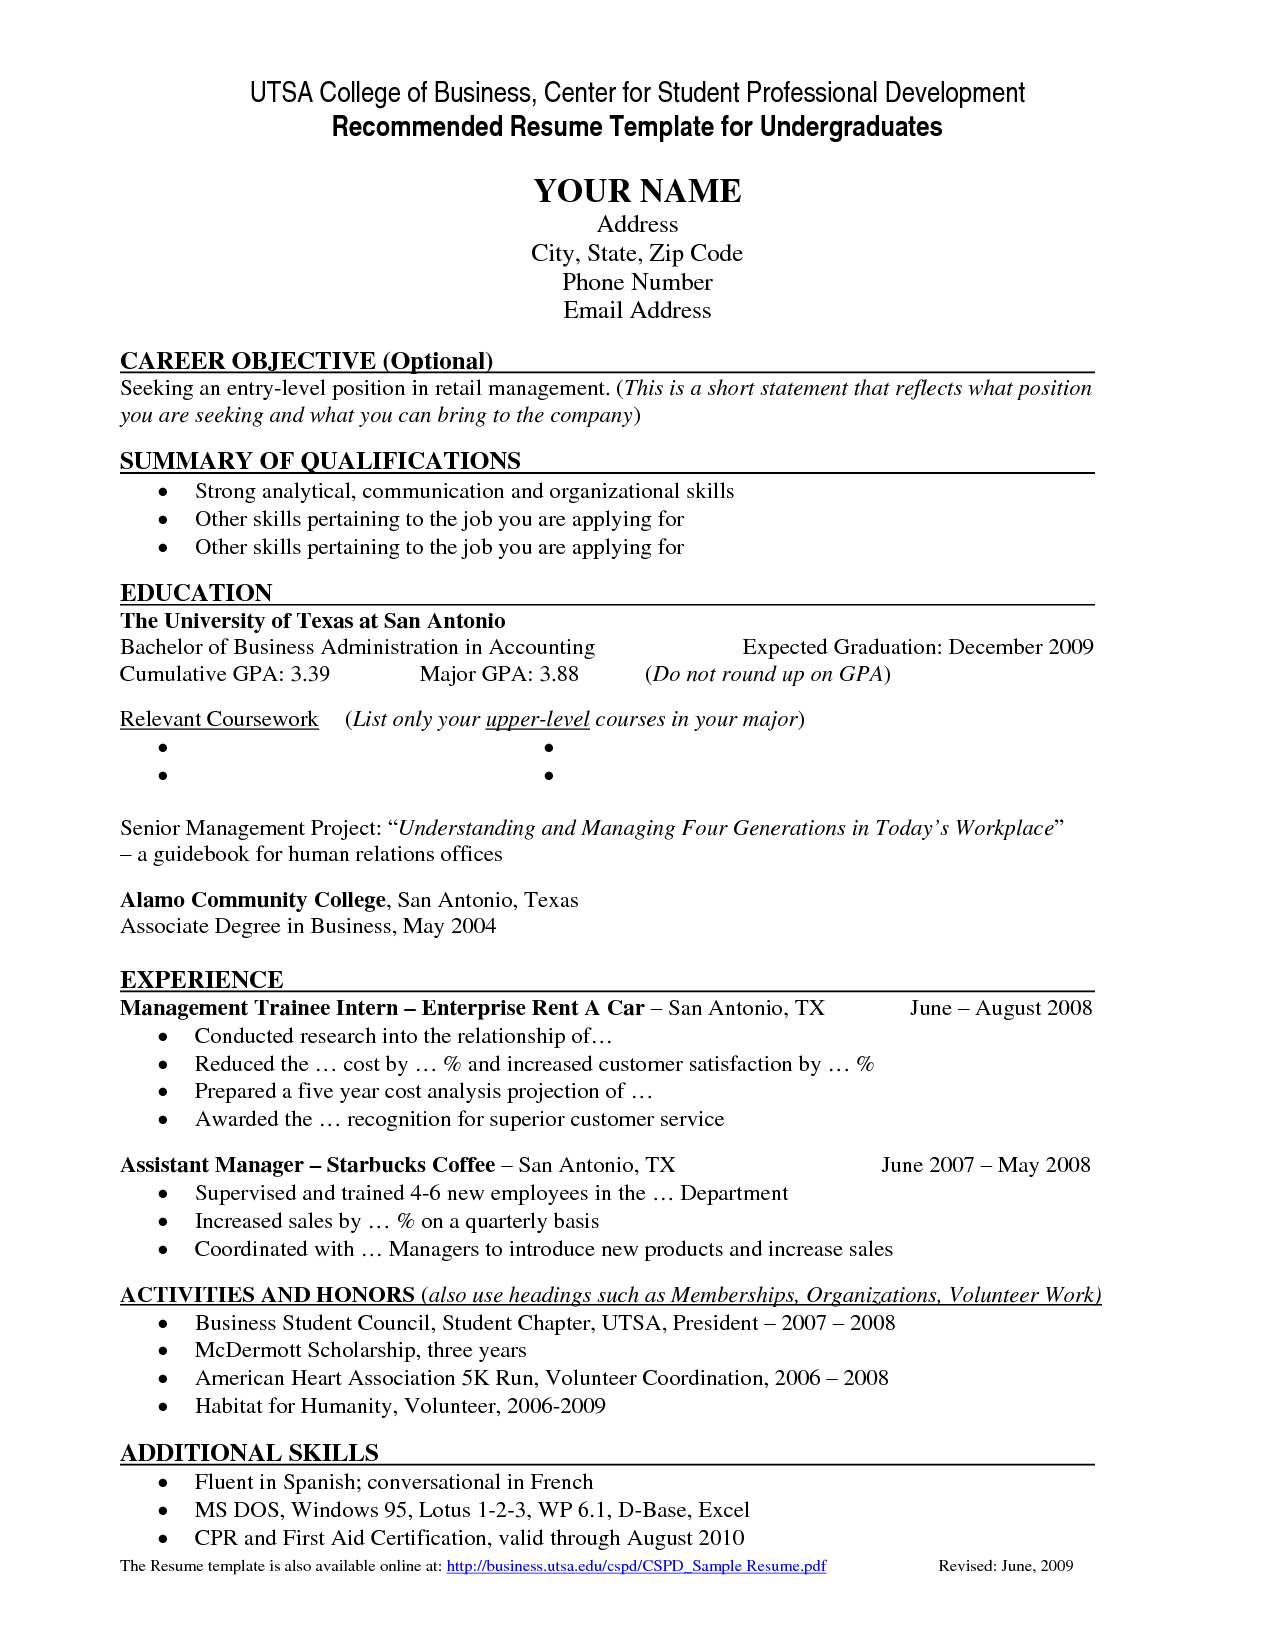 college resume sample templates govt jobvolunteer work on resume application letter sample